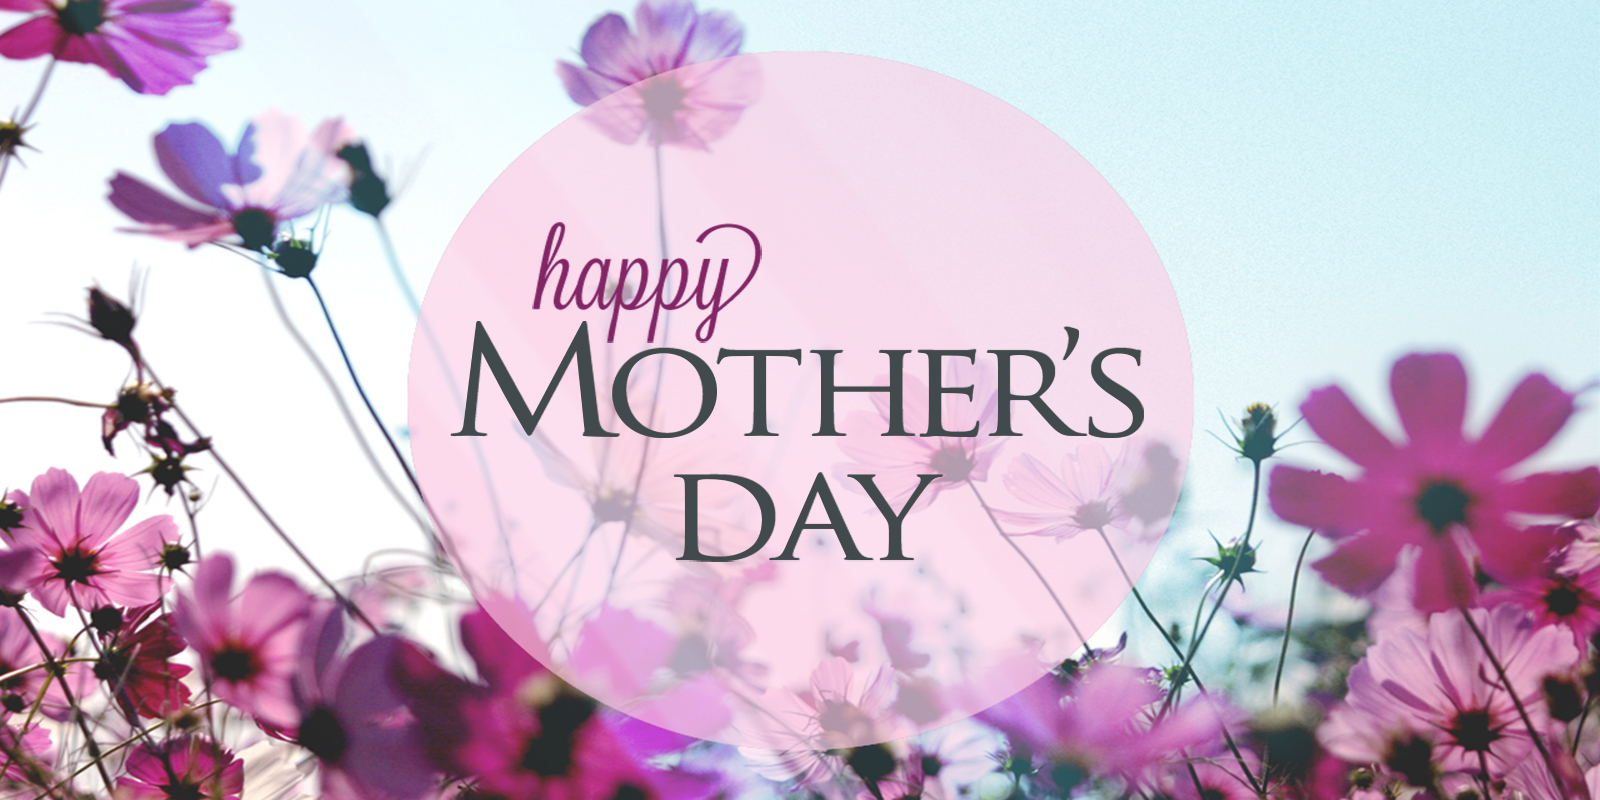 Happy Mothers Day Images 2020 Pictures Photos HD Wallpapers 1600x800